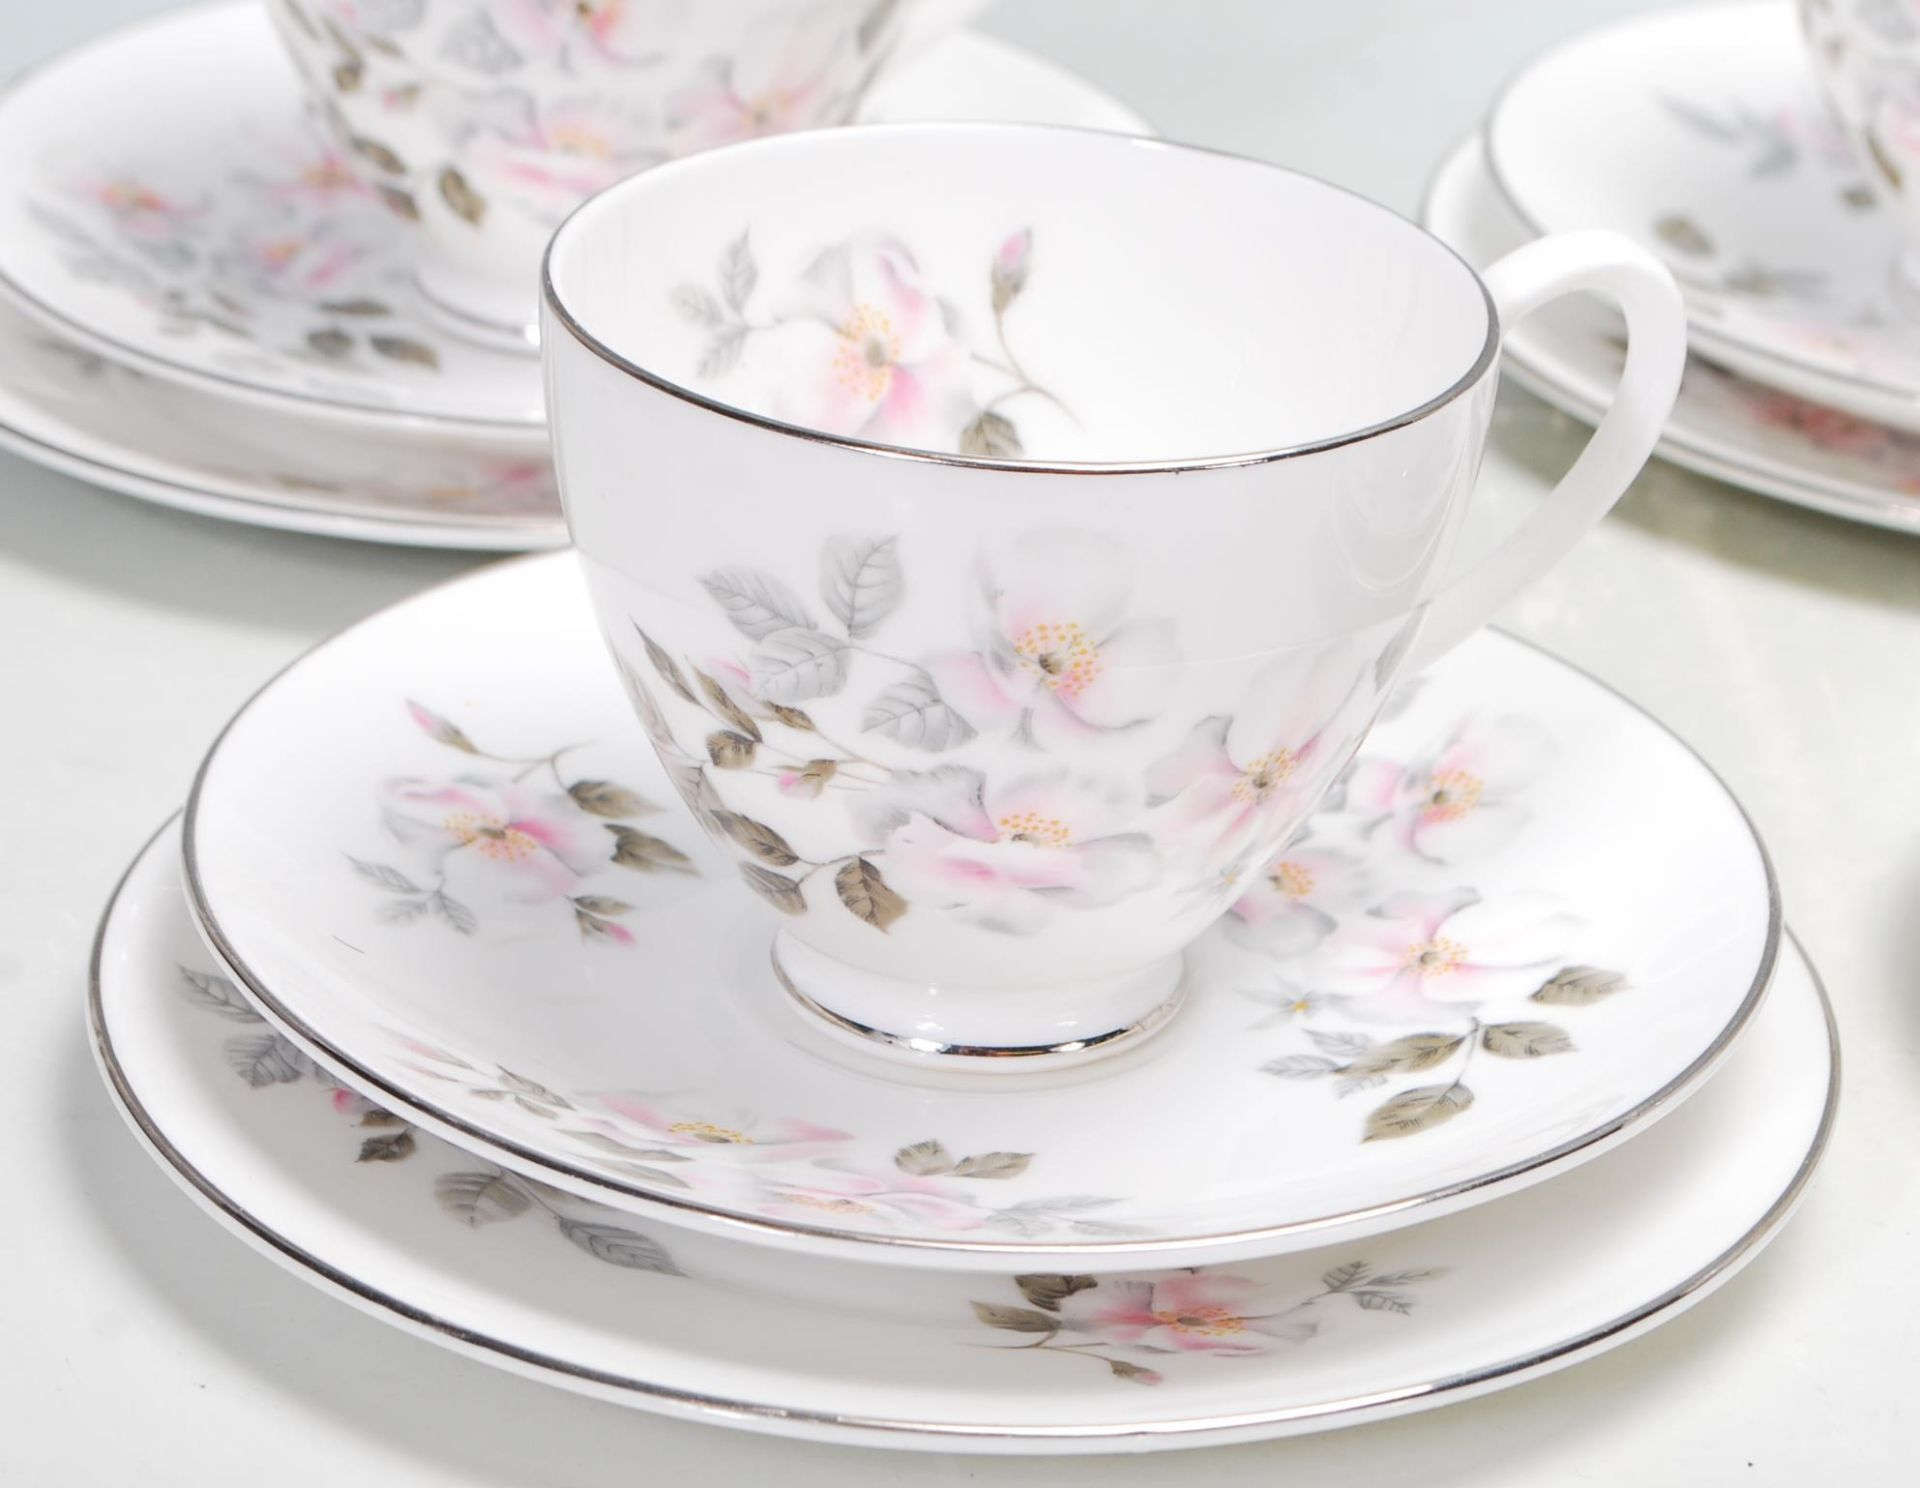 ROYAL ADDERLEY SILVER ROSE TEA SERVICE FOR SIX - Image 2 of 7